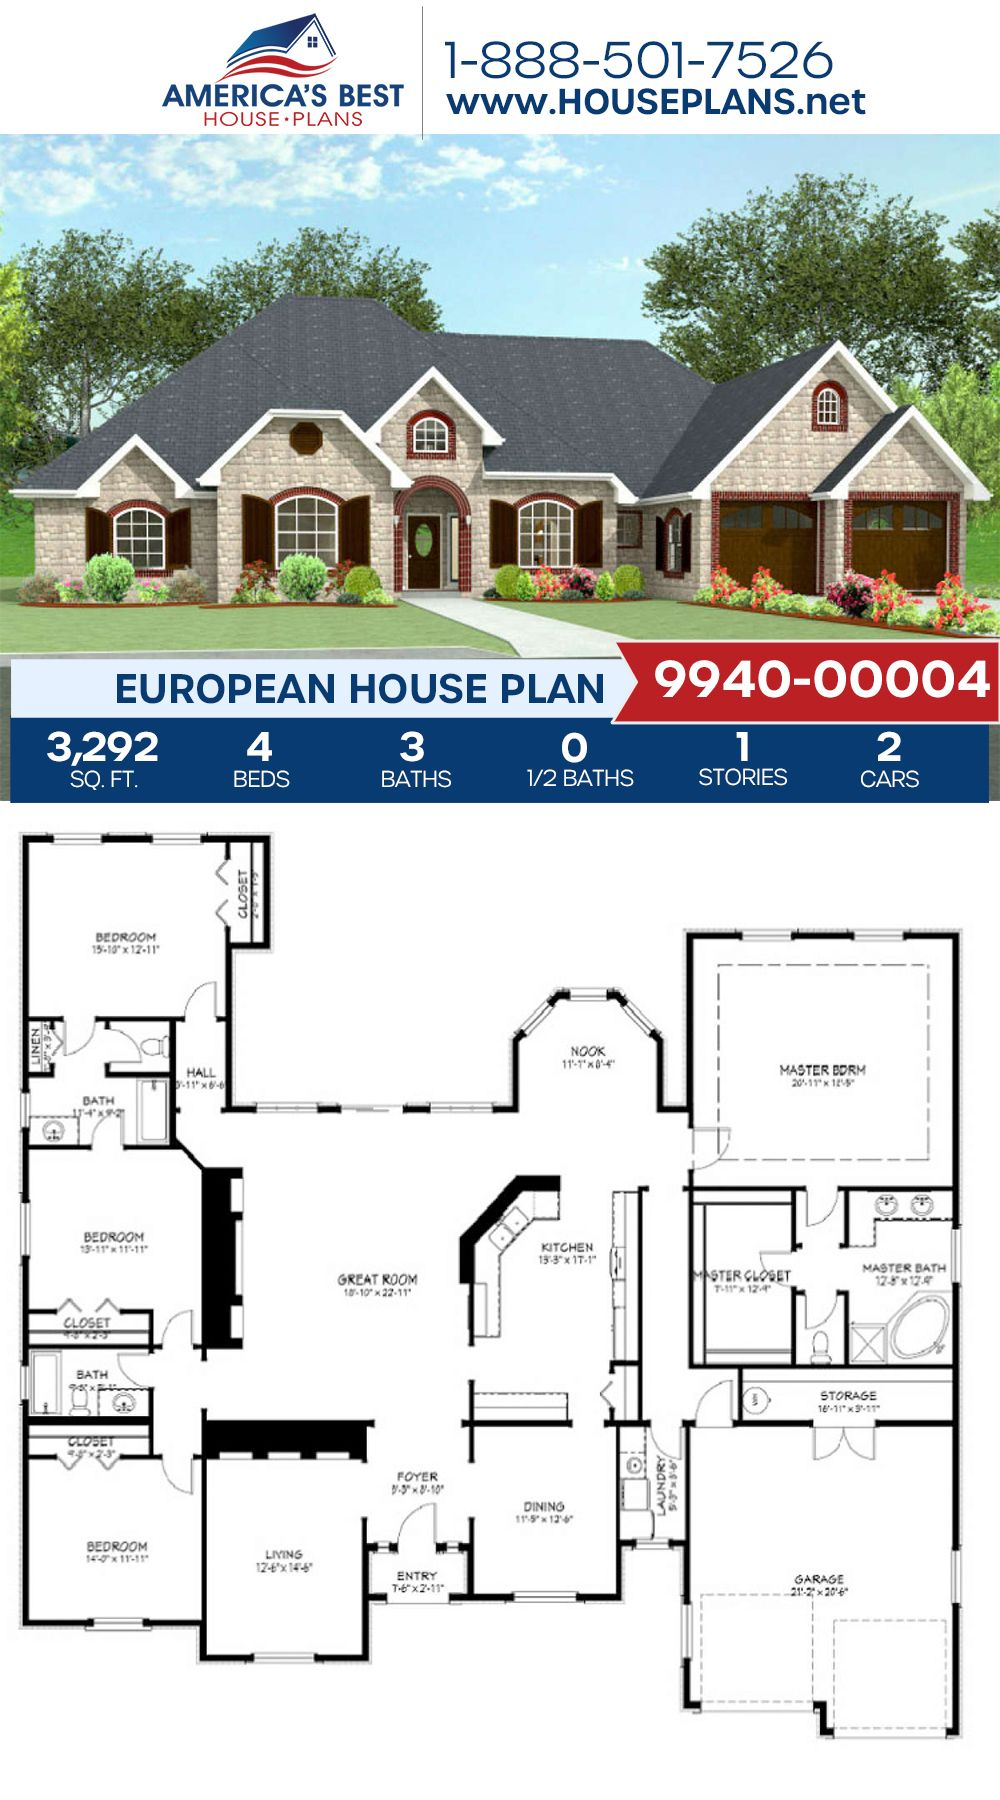 House Plan 9940 00004 European Plan 3 292 Square Feet 4 Bedrooms 3 Bathrooms In 2020 House Plans European House Plans European Plan